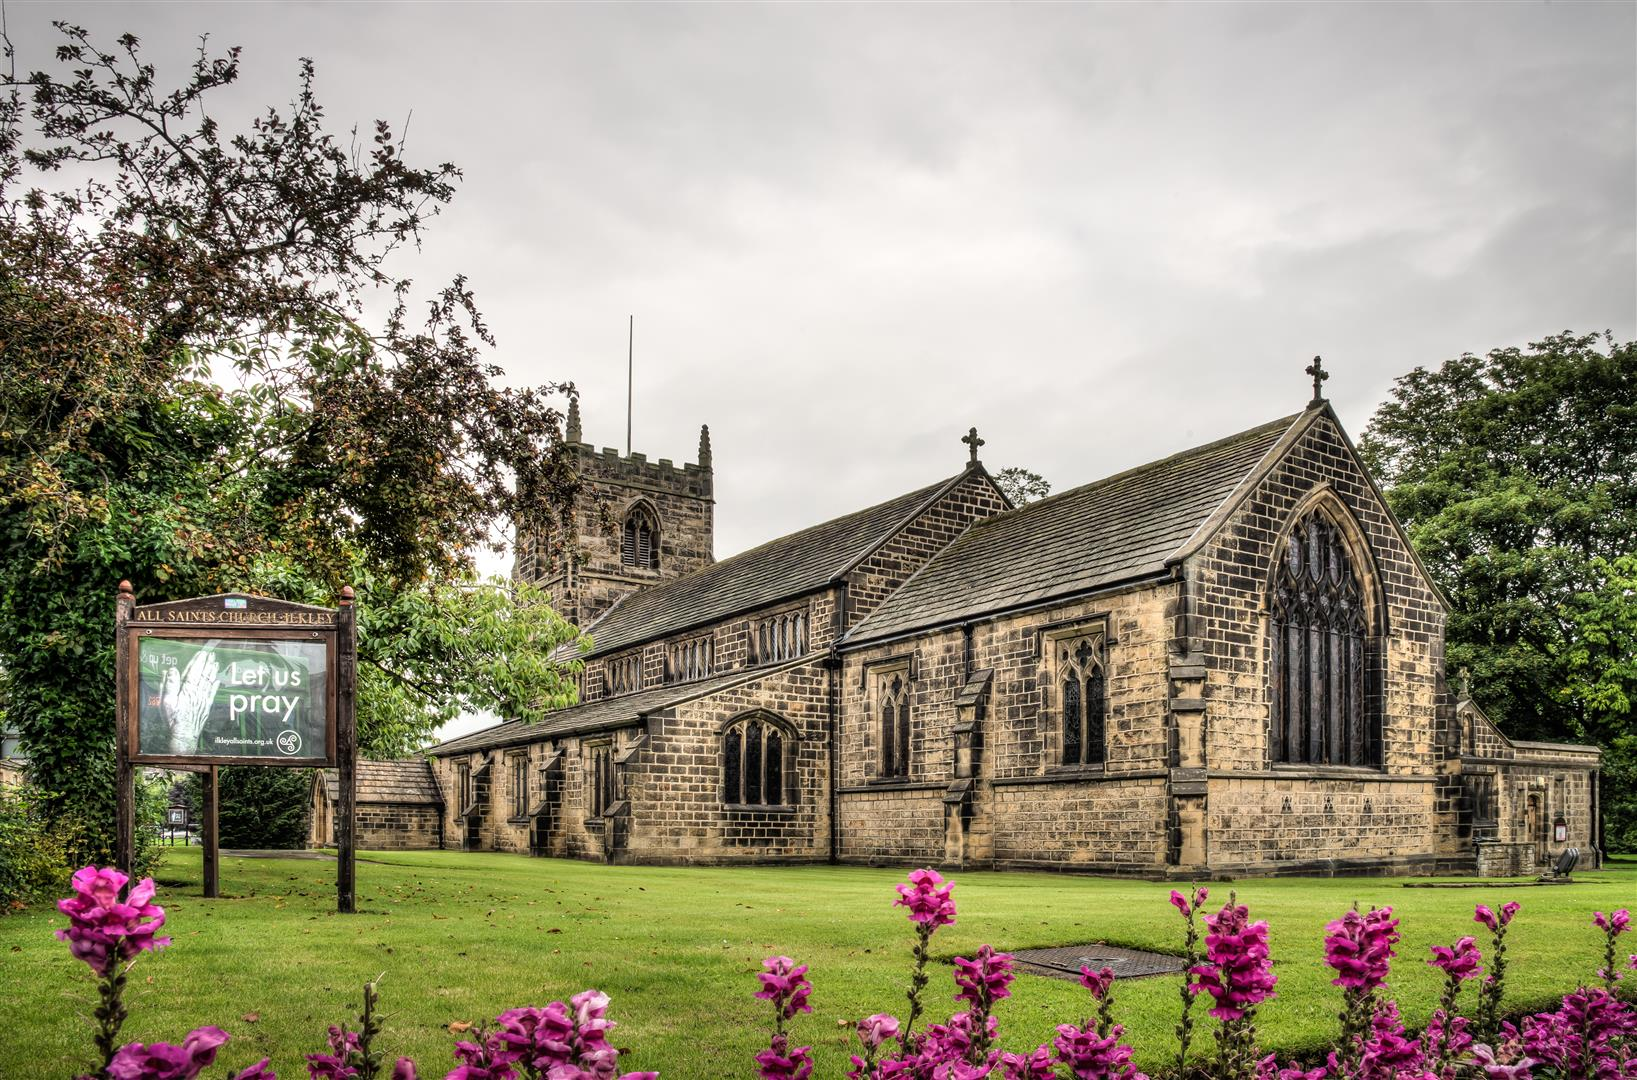 Ilkley All Saints Church